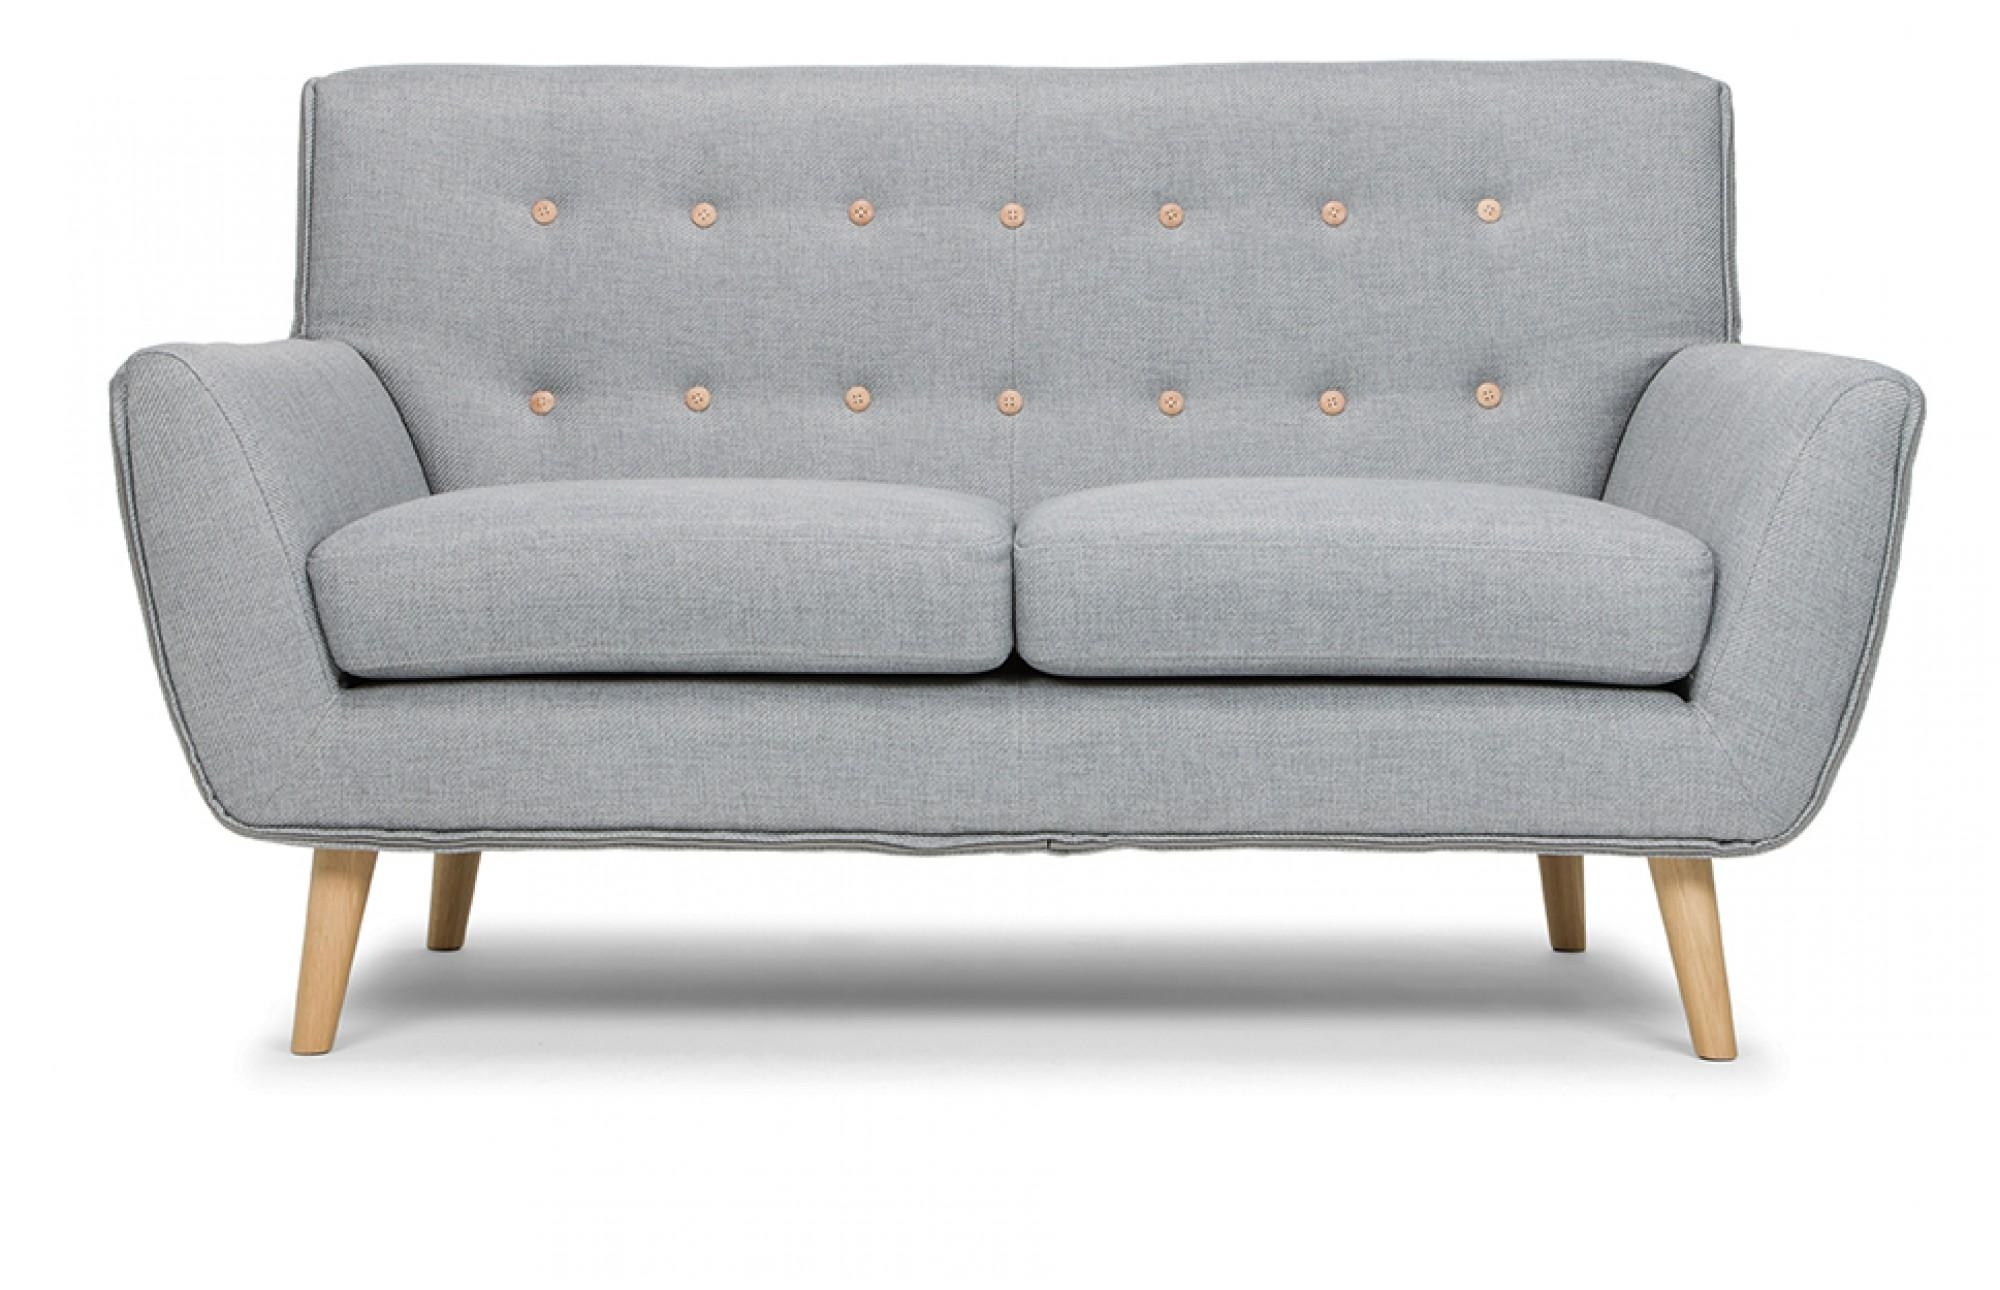 Richard 2 Seater Sofa In Stone Grey – Out And Out Original Regarding Two Seater Sofas (Image 16 of 20)